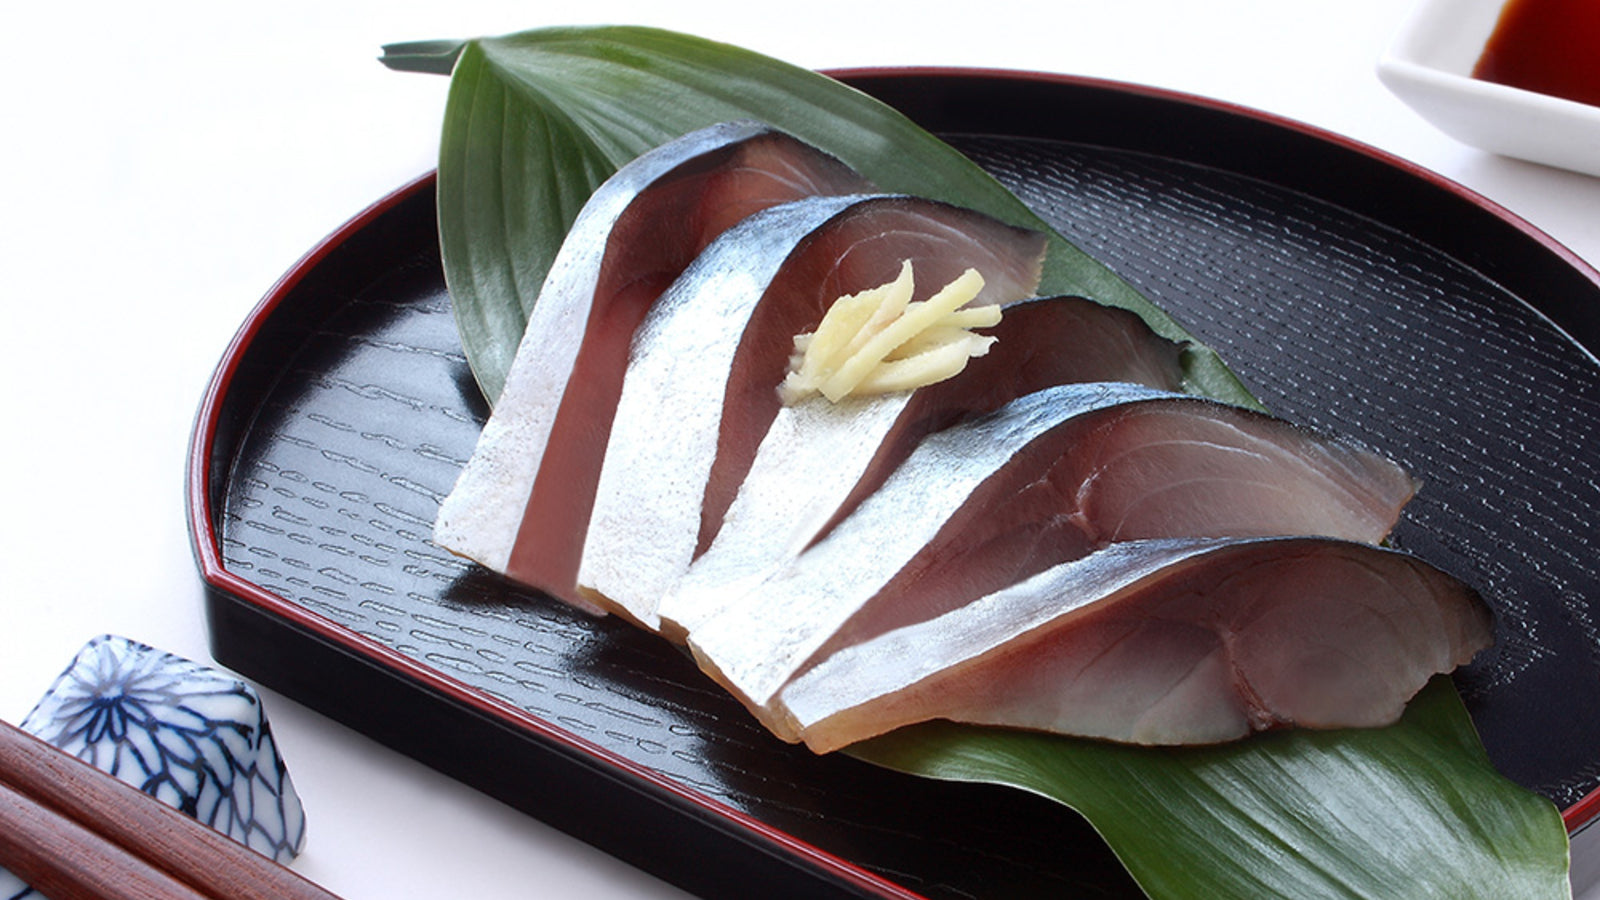 Mackerel - Shime Saba, Cured, Frozen (Japan) - 3 oz